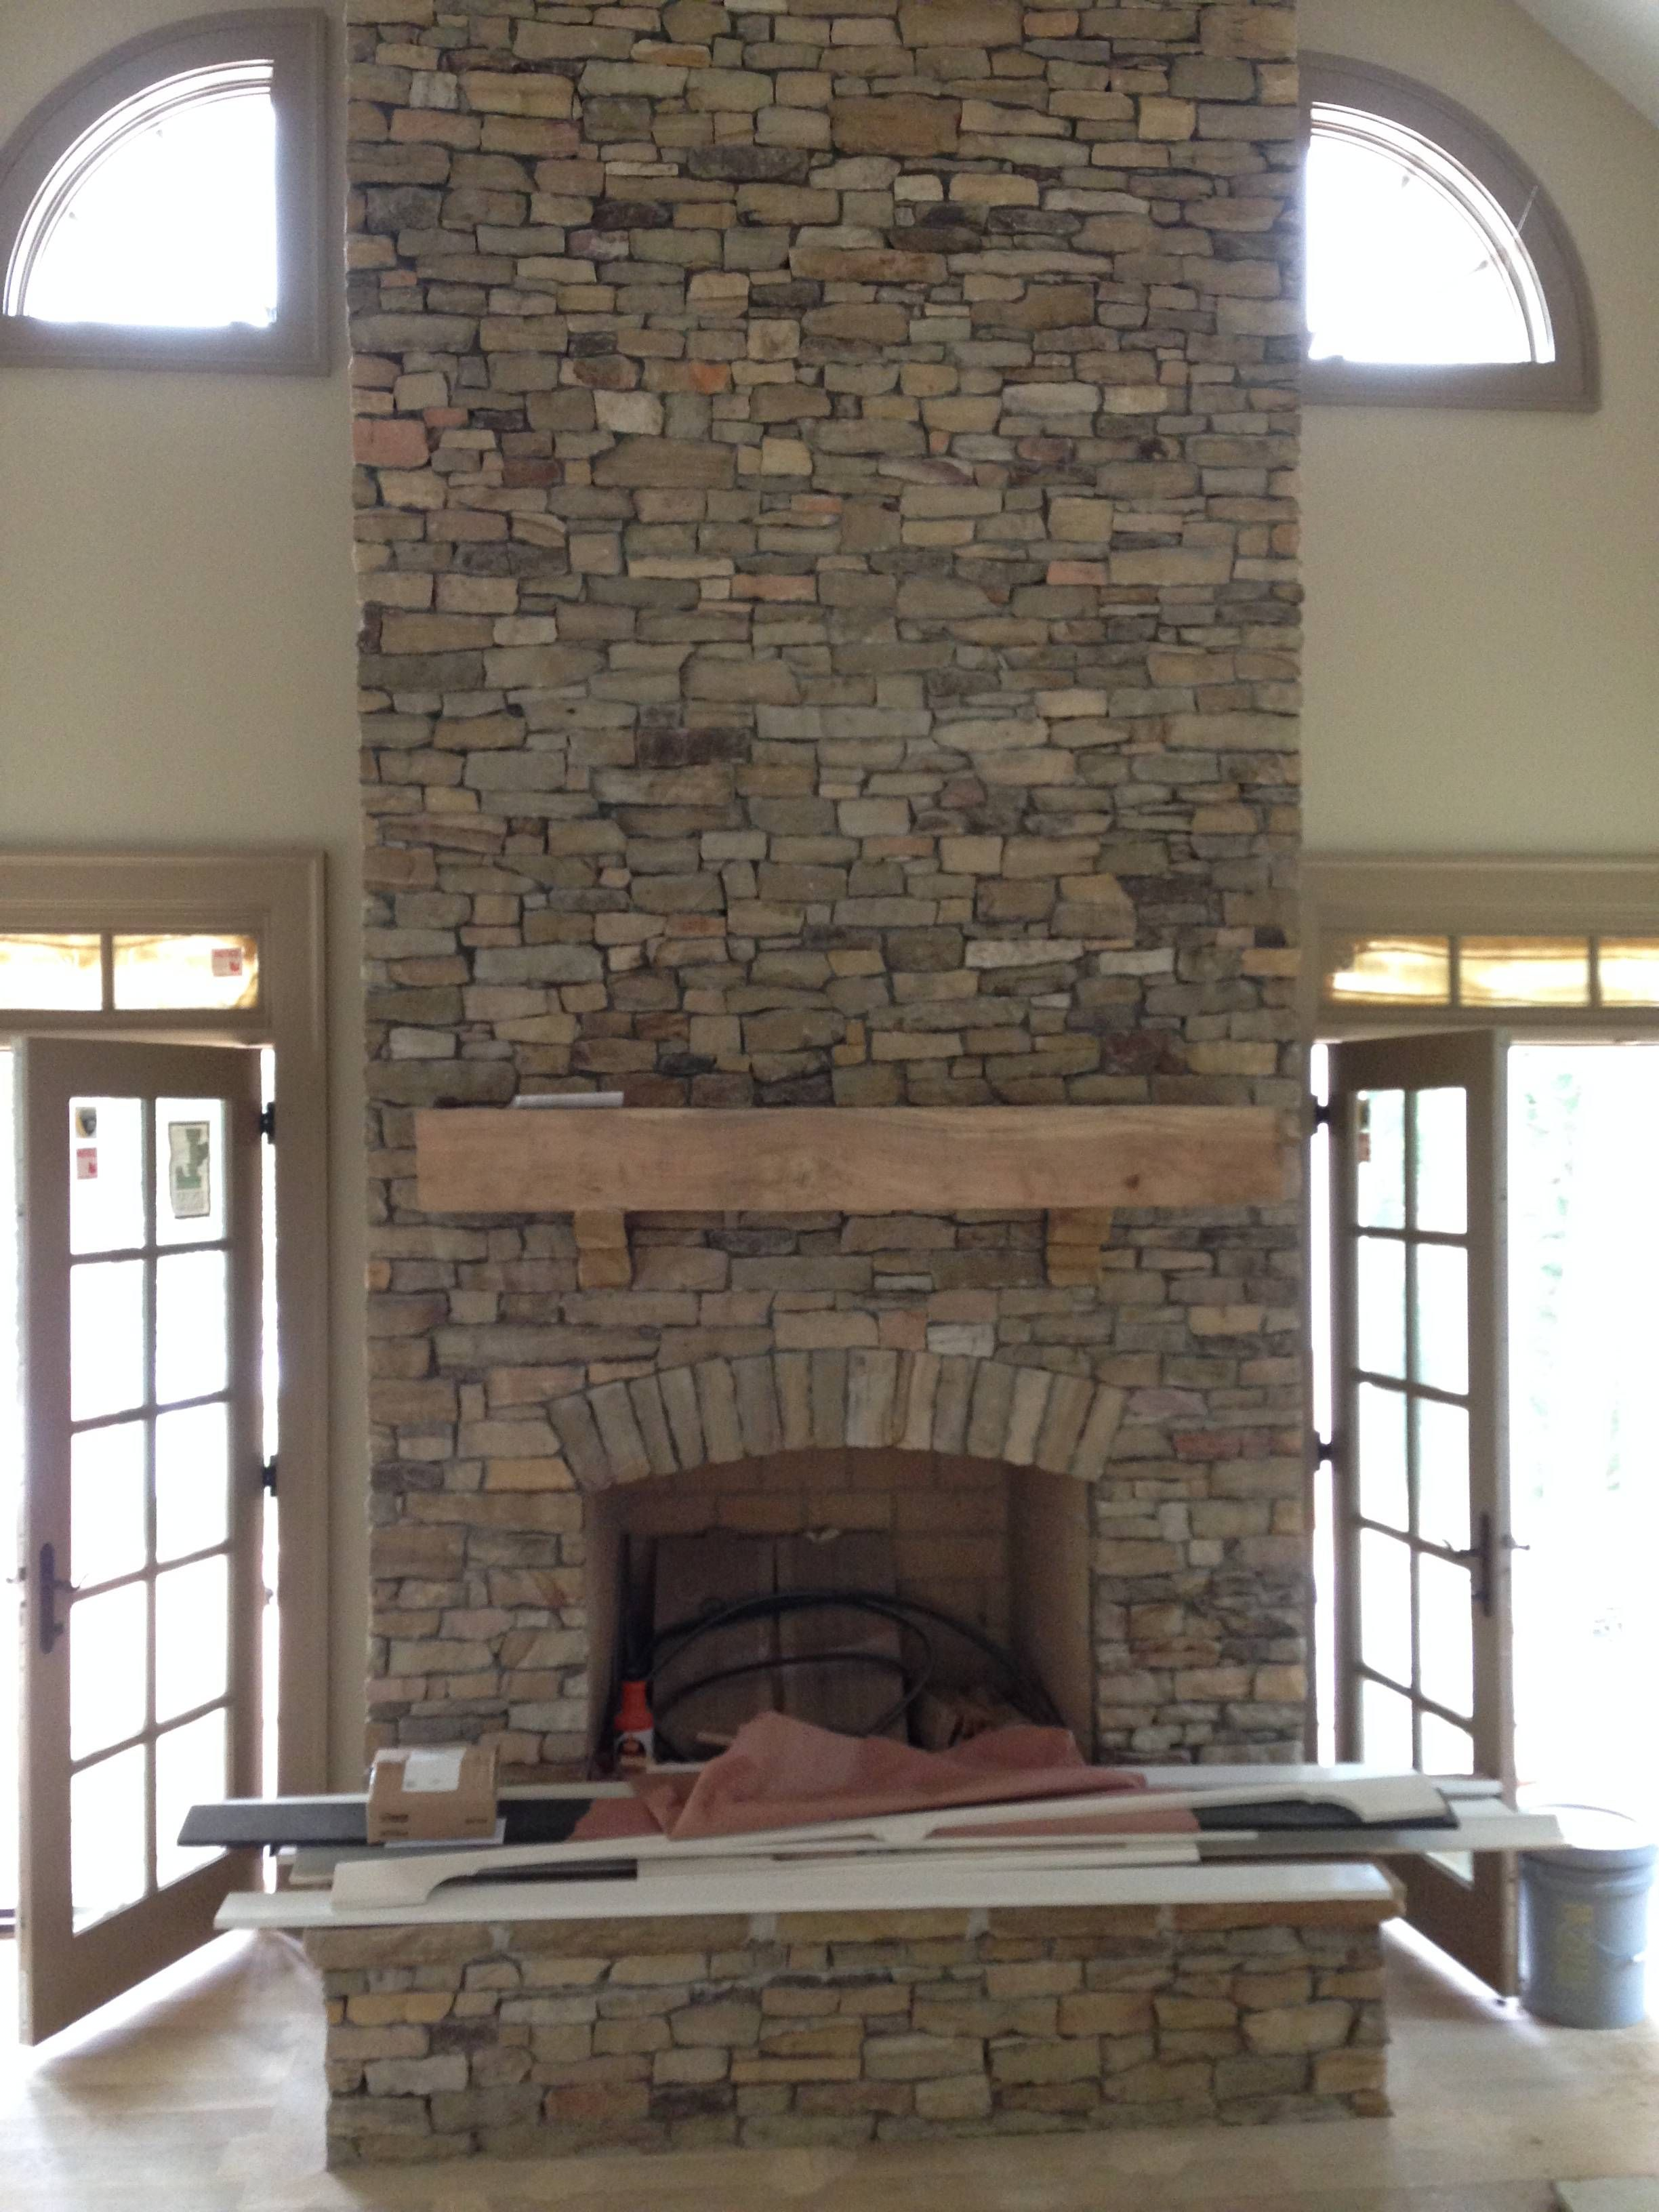 Astounding 101 Resources Stacked Stone Tile House Home Design Ideas Home Interior And Landscaping Ologienasavecom